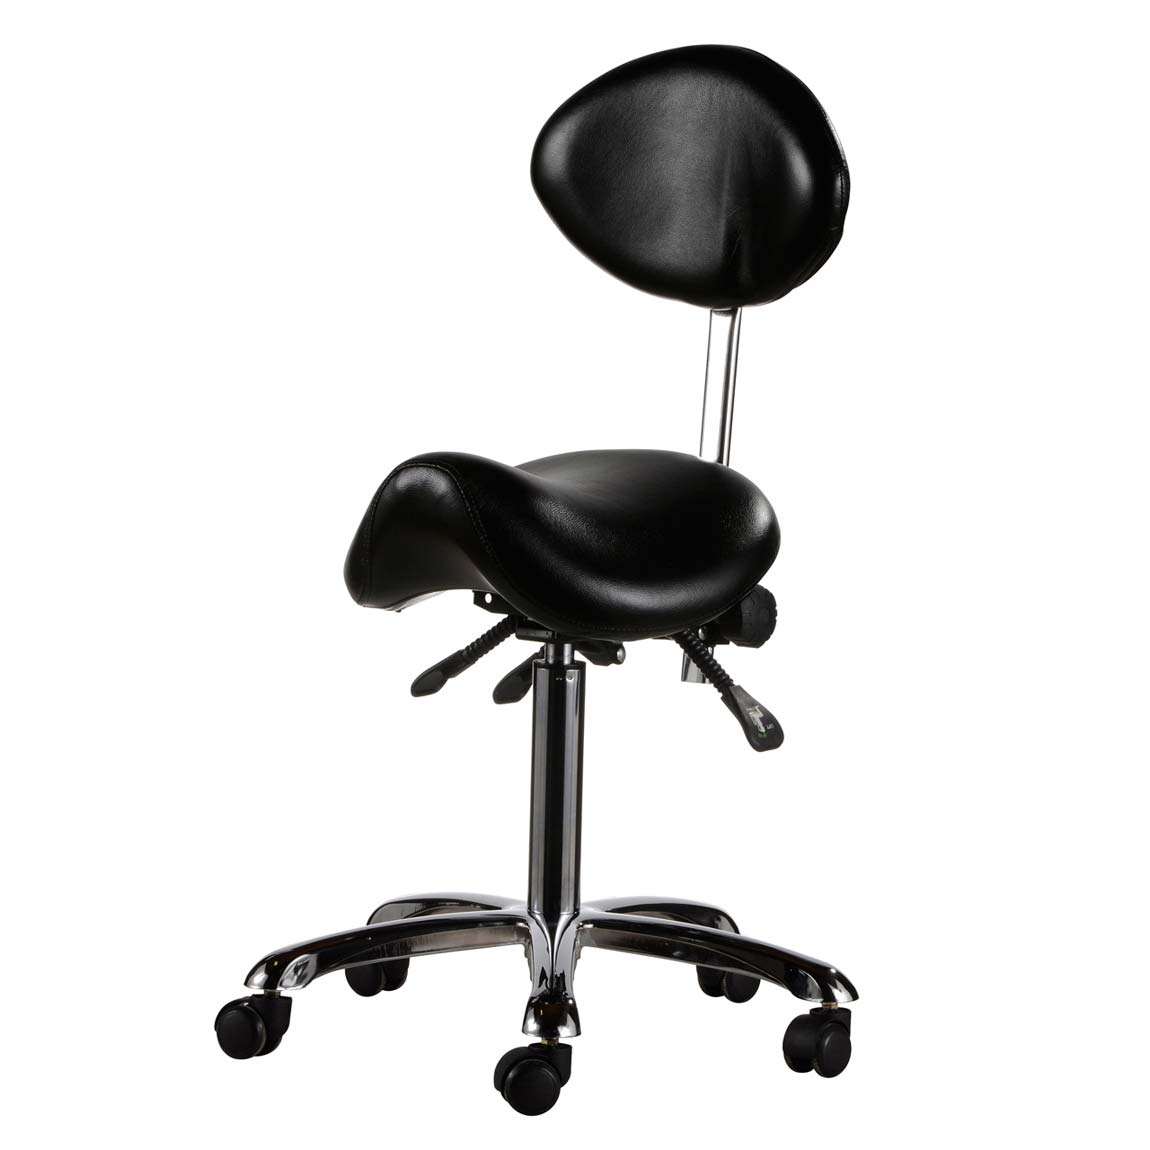 Saddle Chairs Eurostyle Saddle Chair For Nail Technician Ultimate